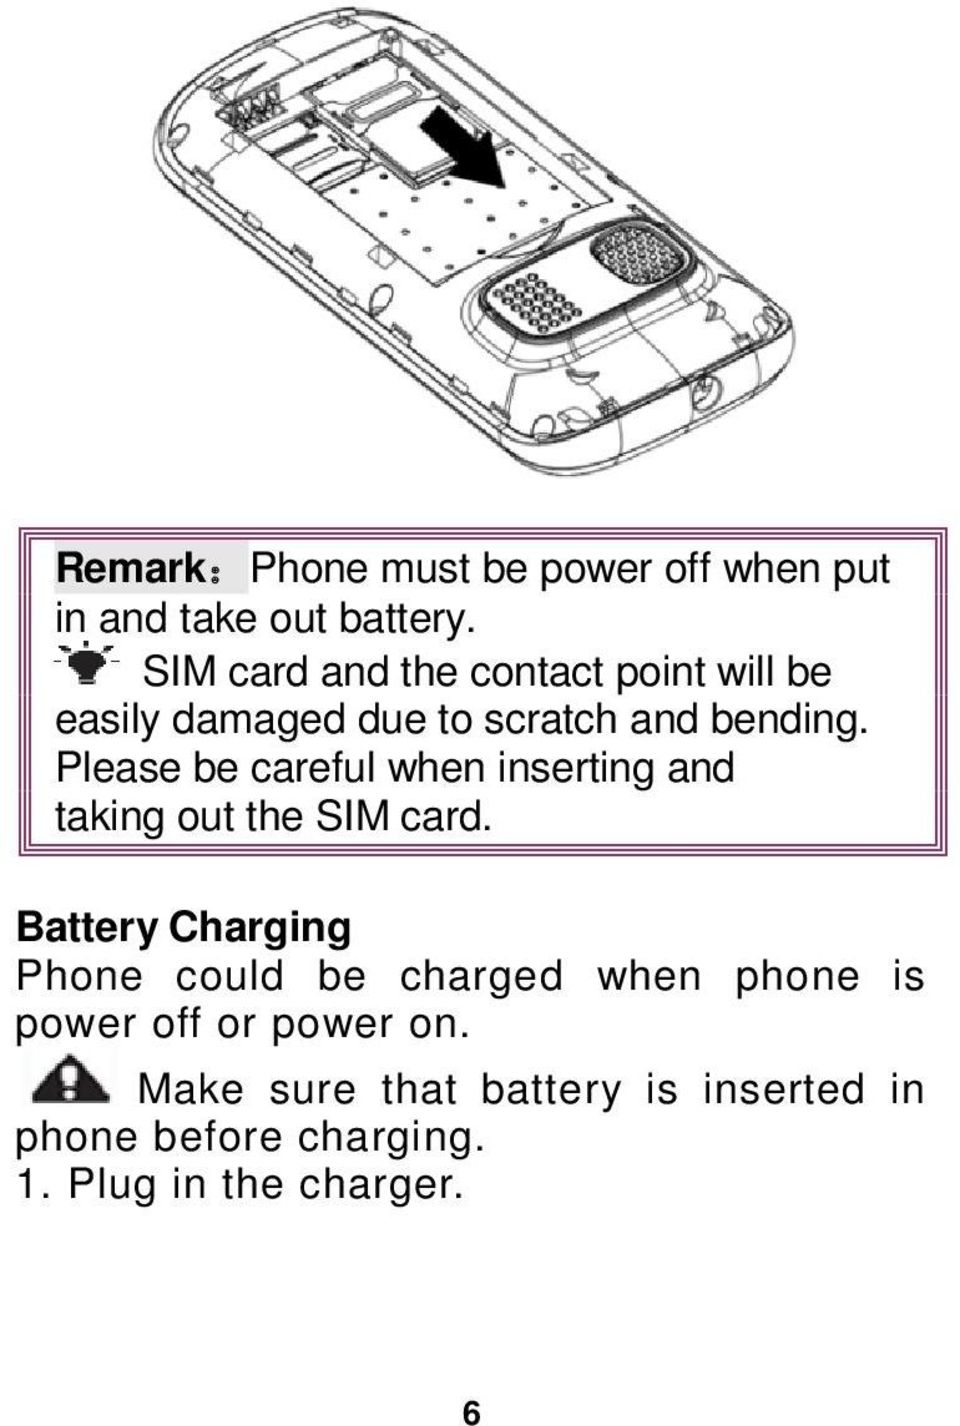 Please be careful when inserting and taking out the SIM card.